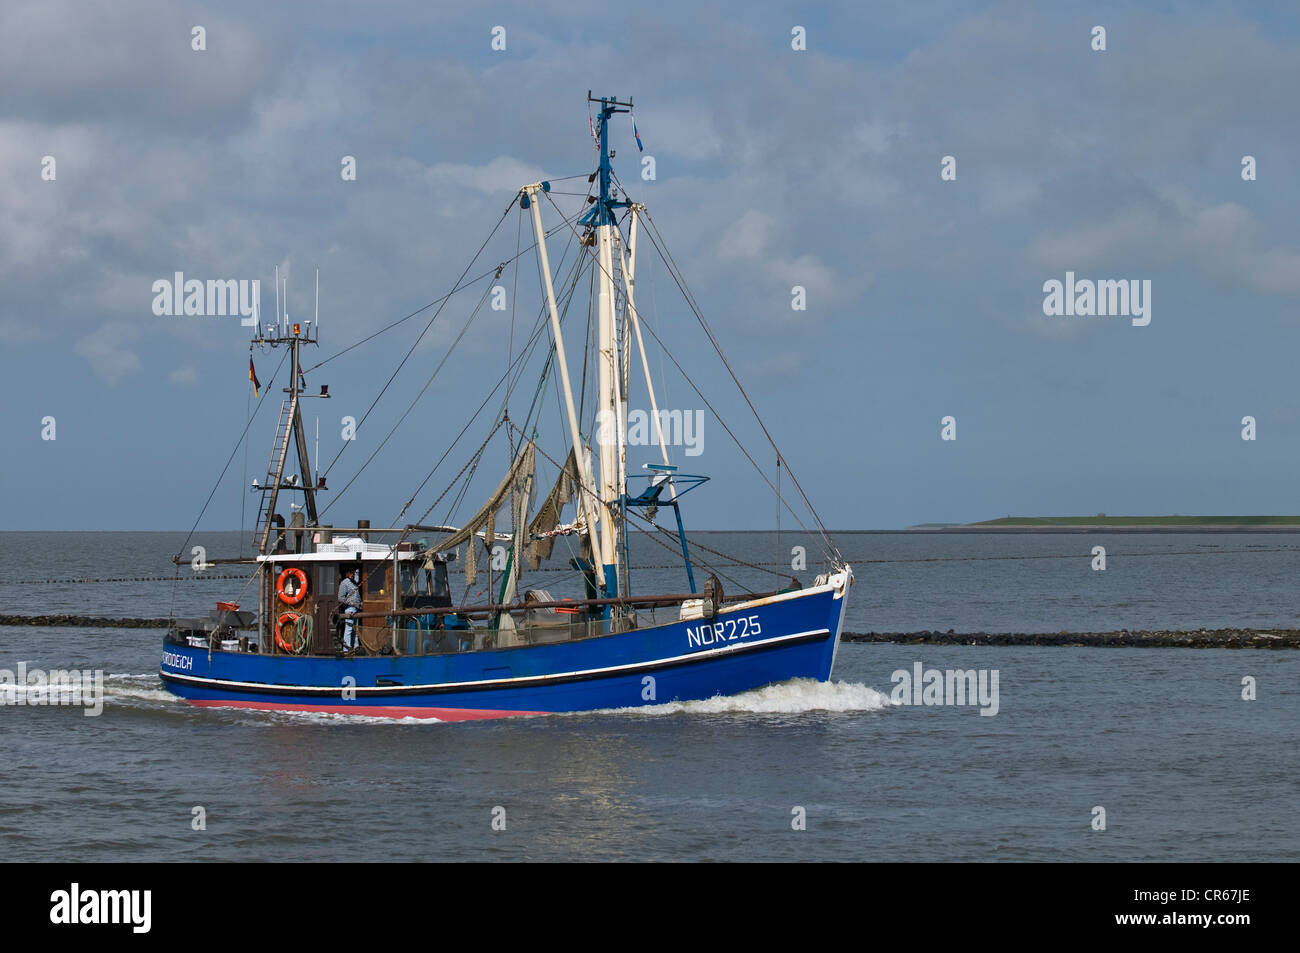 Blue crab fishing boat, NOR 225, returning to the port of Norddeich after fishing, Lower Saxon Wadden Sea - Stock Image